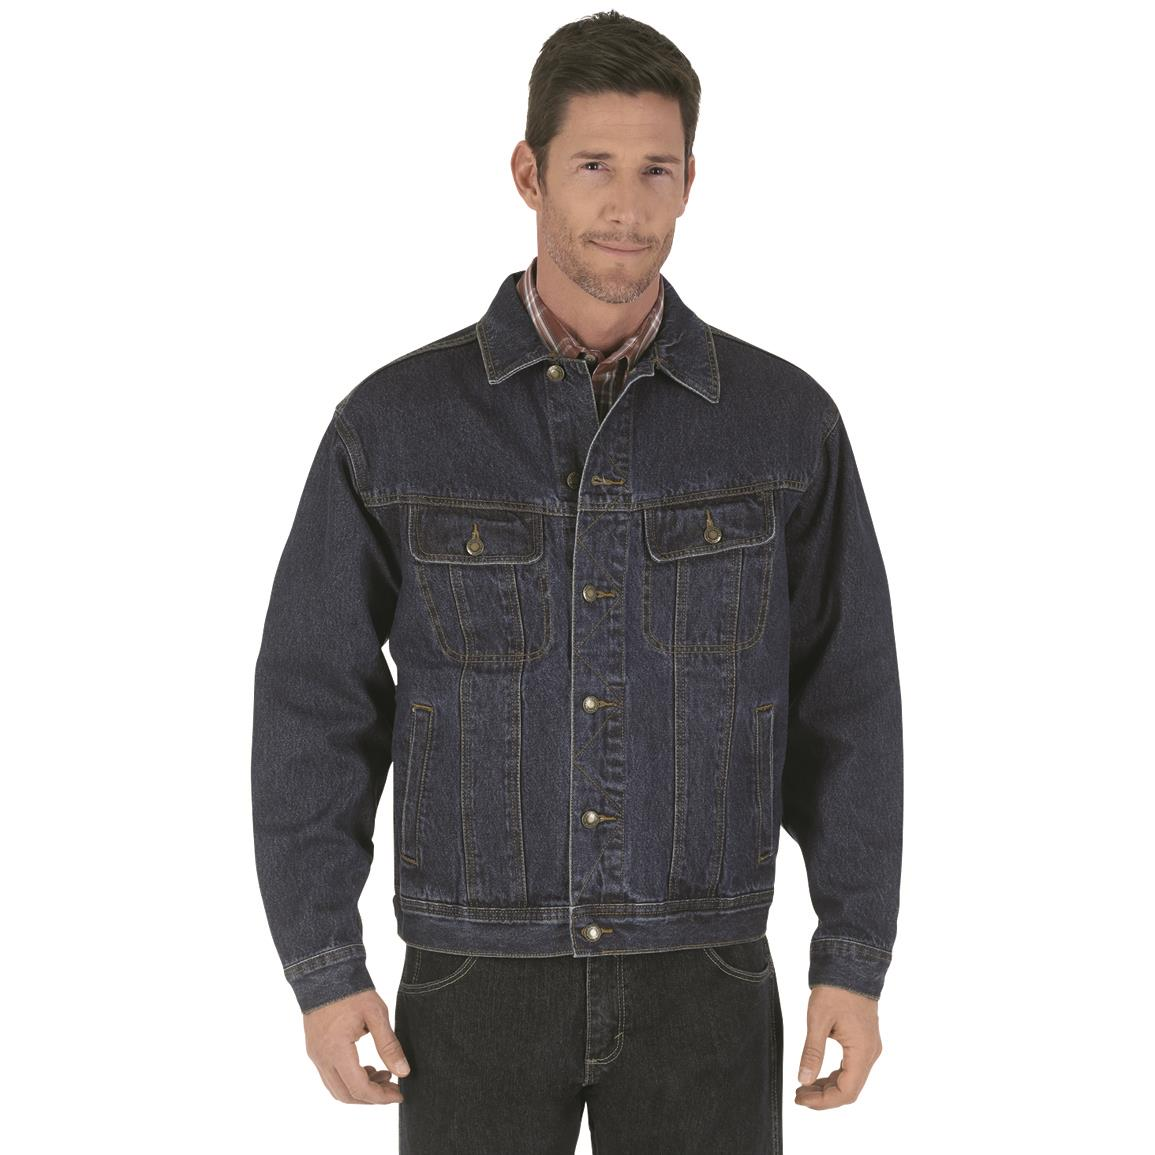 Wrangler Rugged Wear Men's Denim Jacket, Antique Indigo